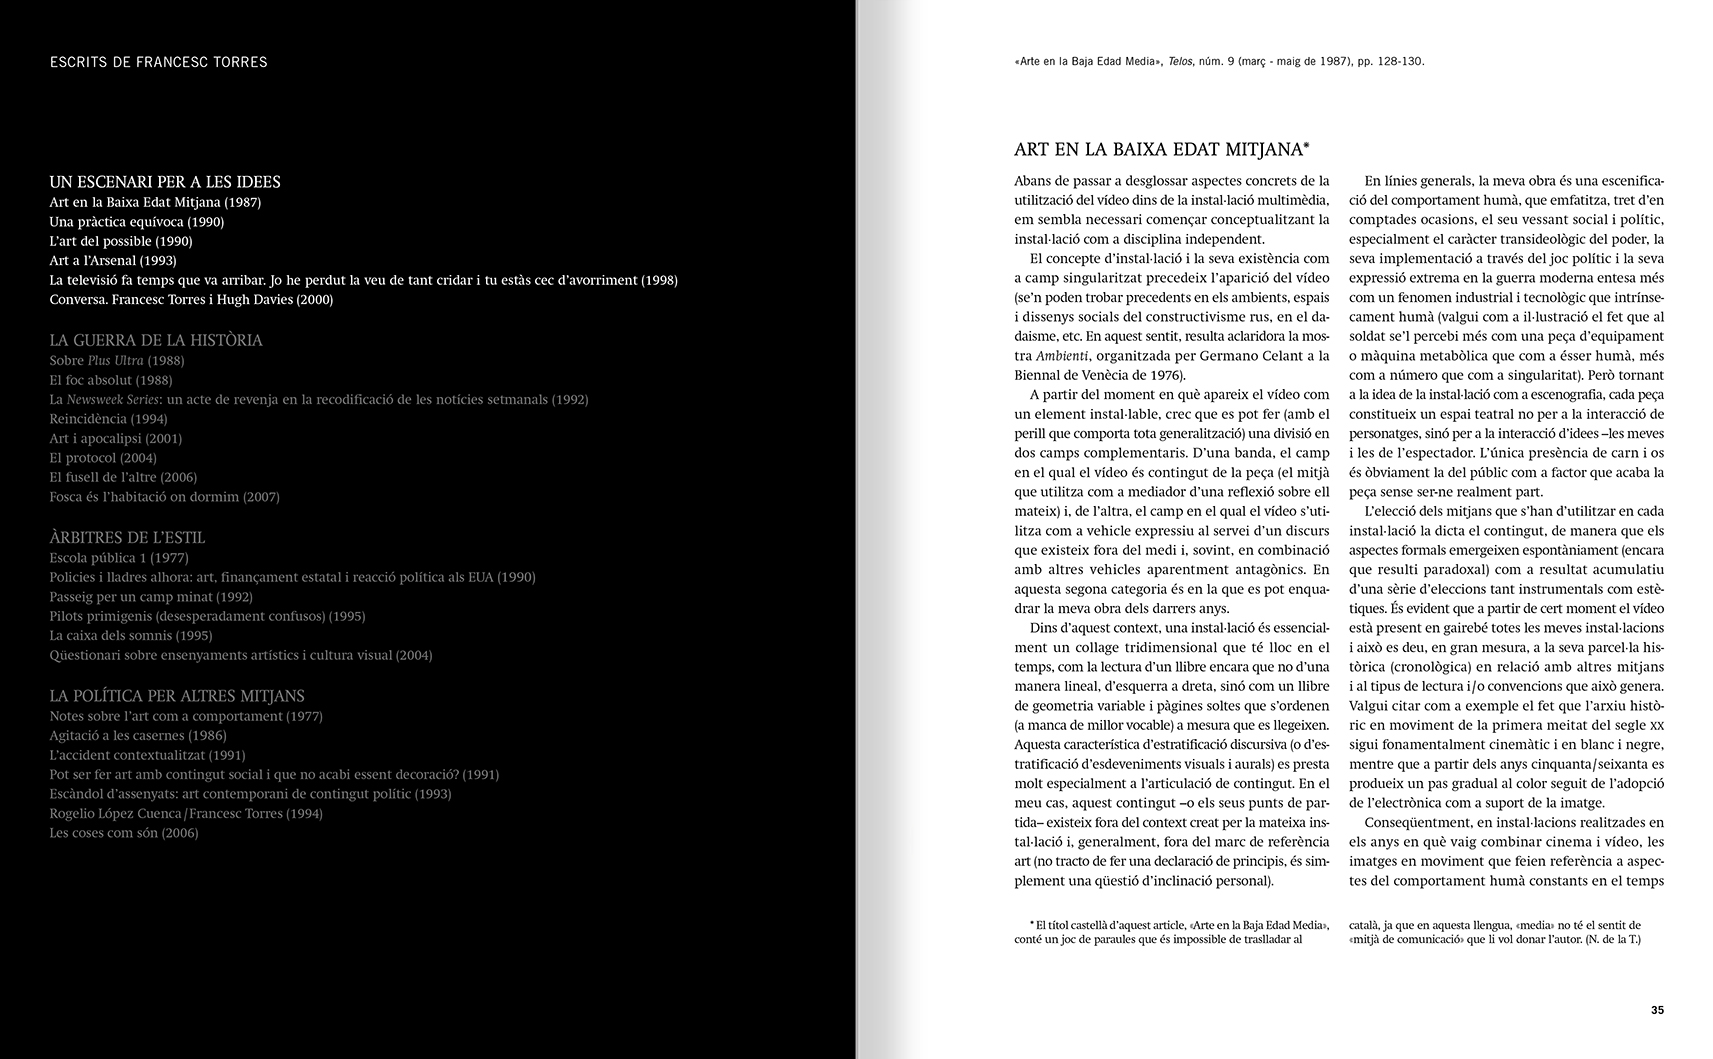 Selection from the catalogue 'Francesc Torres. Da capo', pages 34 and 35